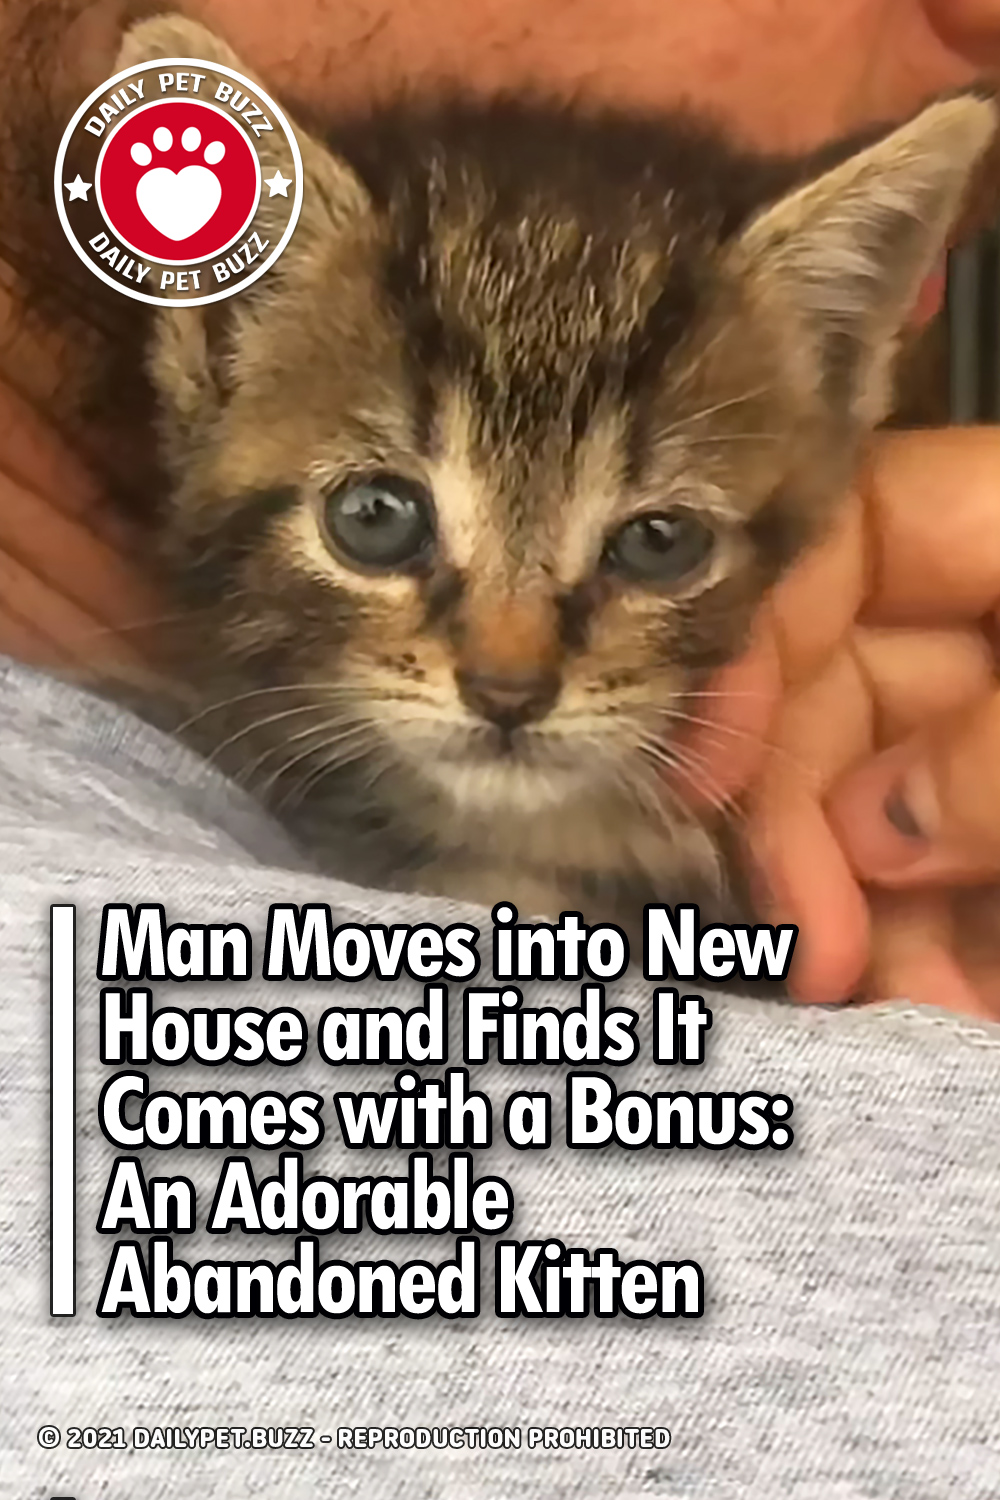 Man Moves into New House and Finds It Comes with a Bonus: An Adorable Abandoned Kitten